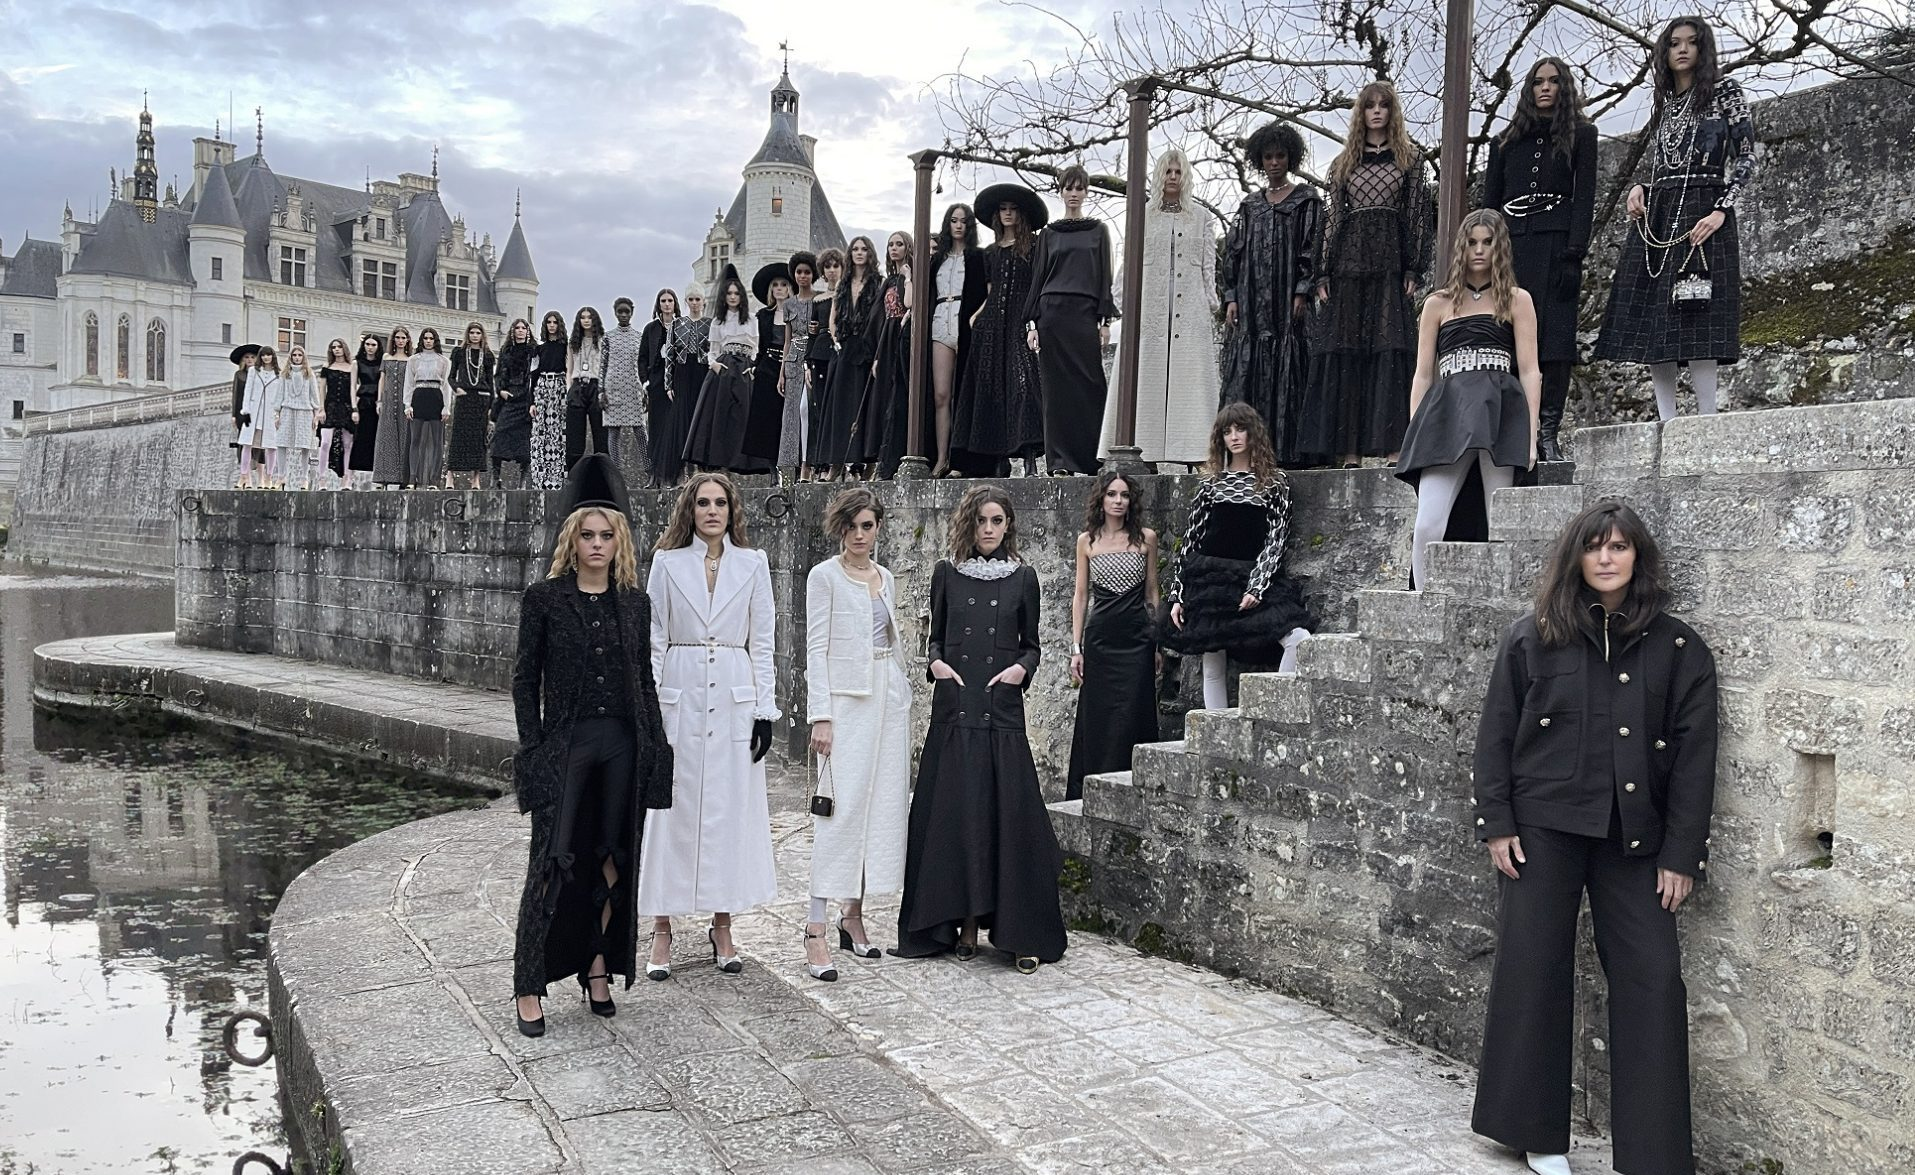 H Métiers d'art collection 2020/21 του οίκου Chanel